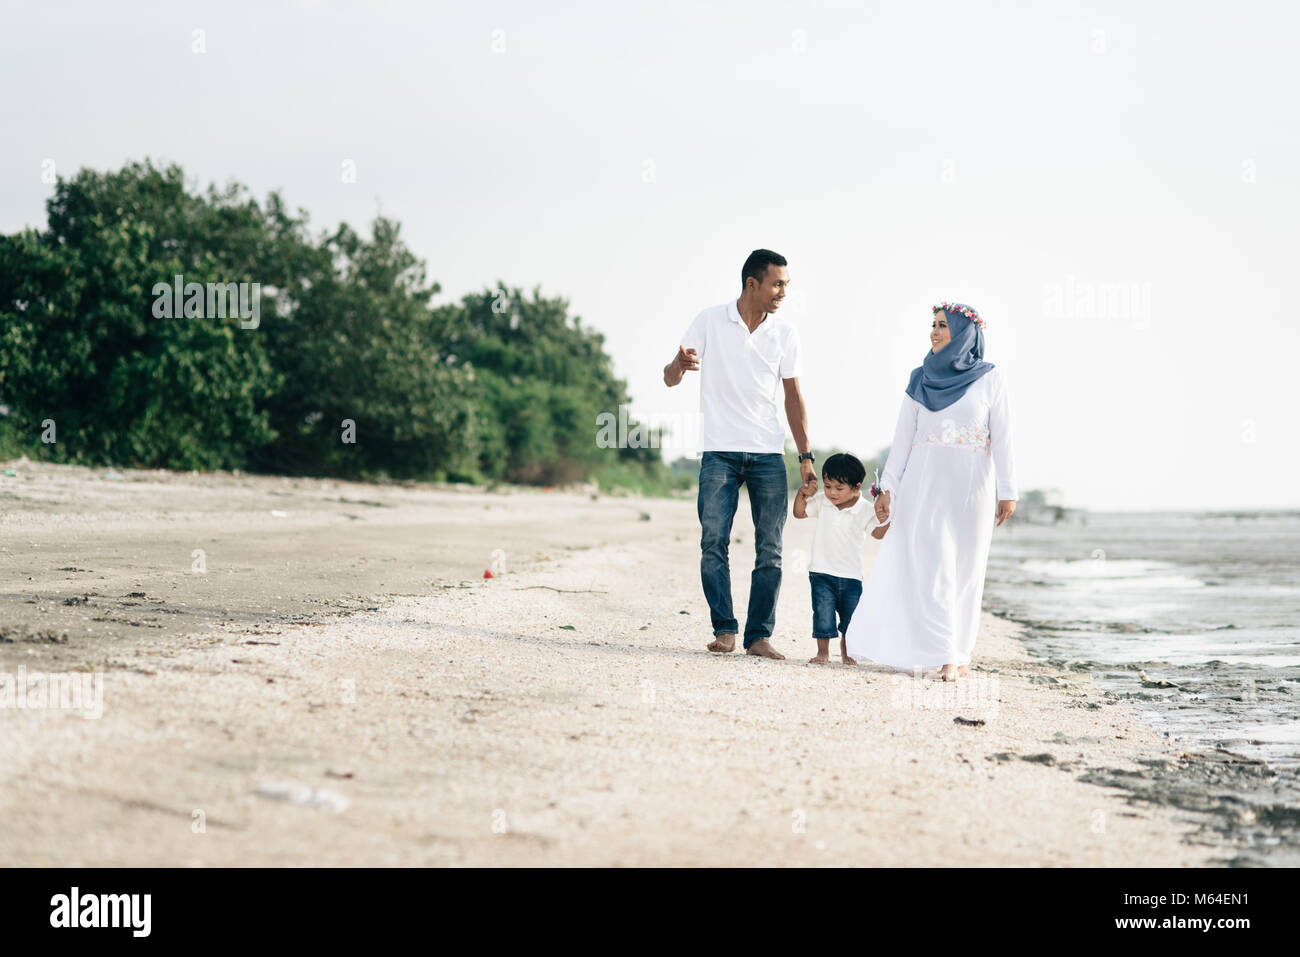 happy family having fun time walking together at the beach located in Pantai Remis,Kuala selangor,selangor,malaysia. - Stock Image